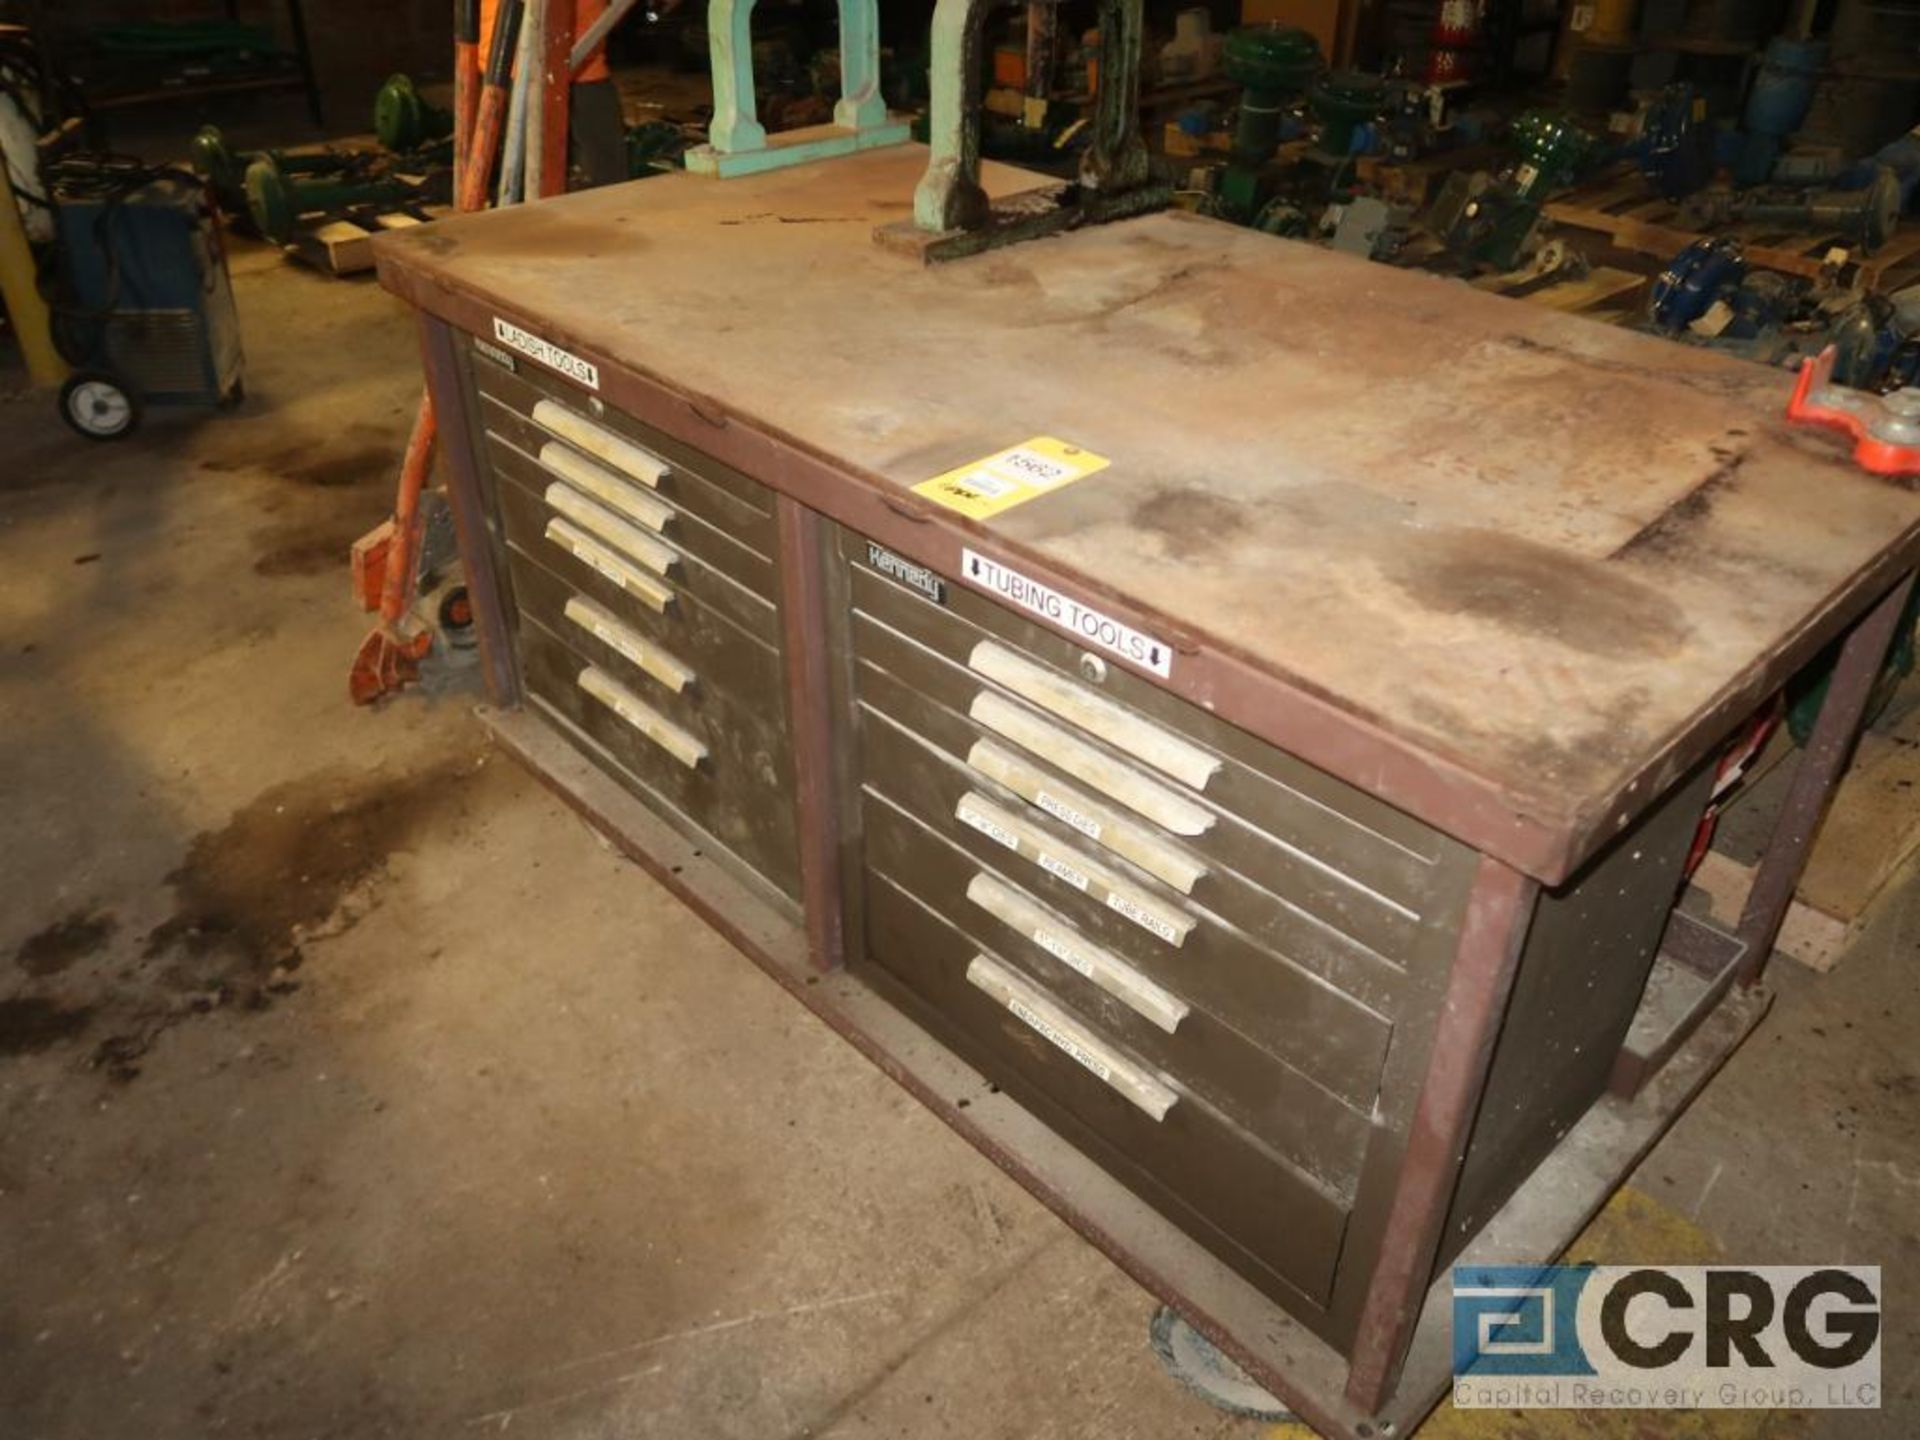 Lot of miscellaneous items including (1) rolling 12 drawer workbench 61 in. x 32 in., and (2) manual